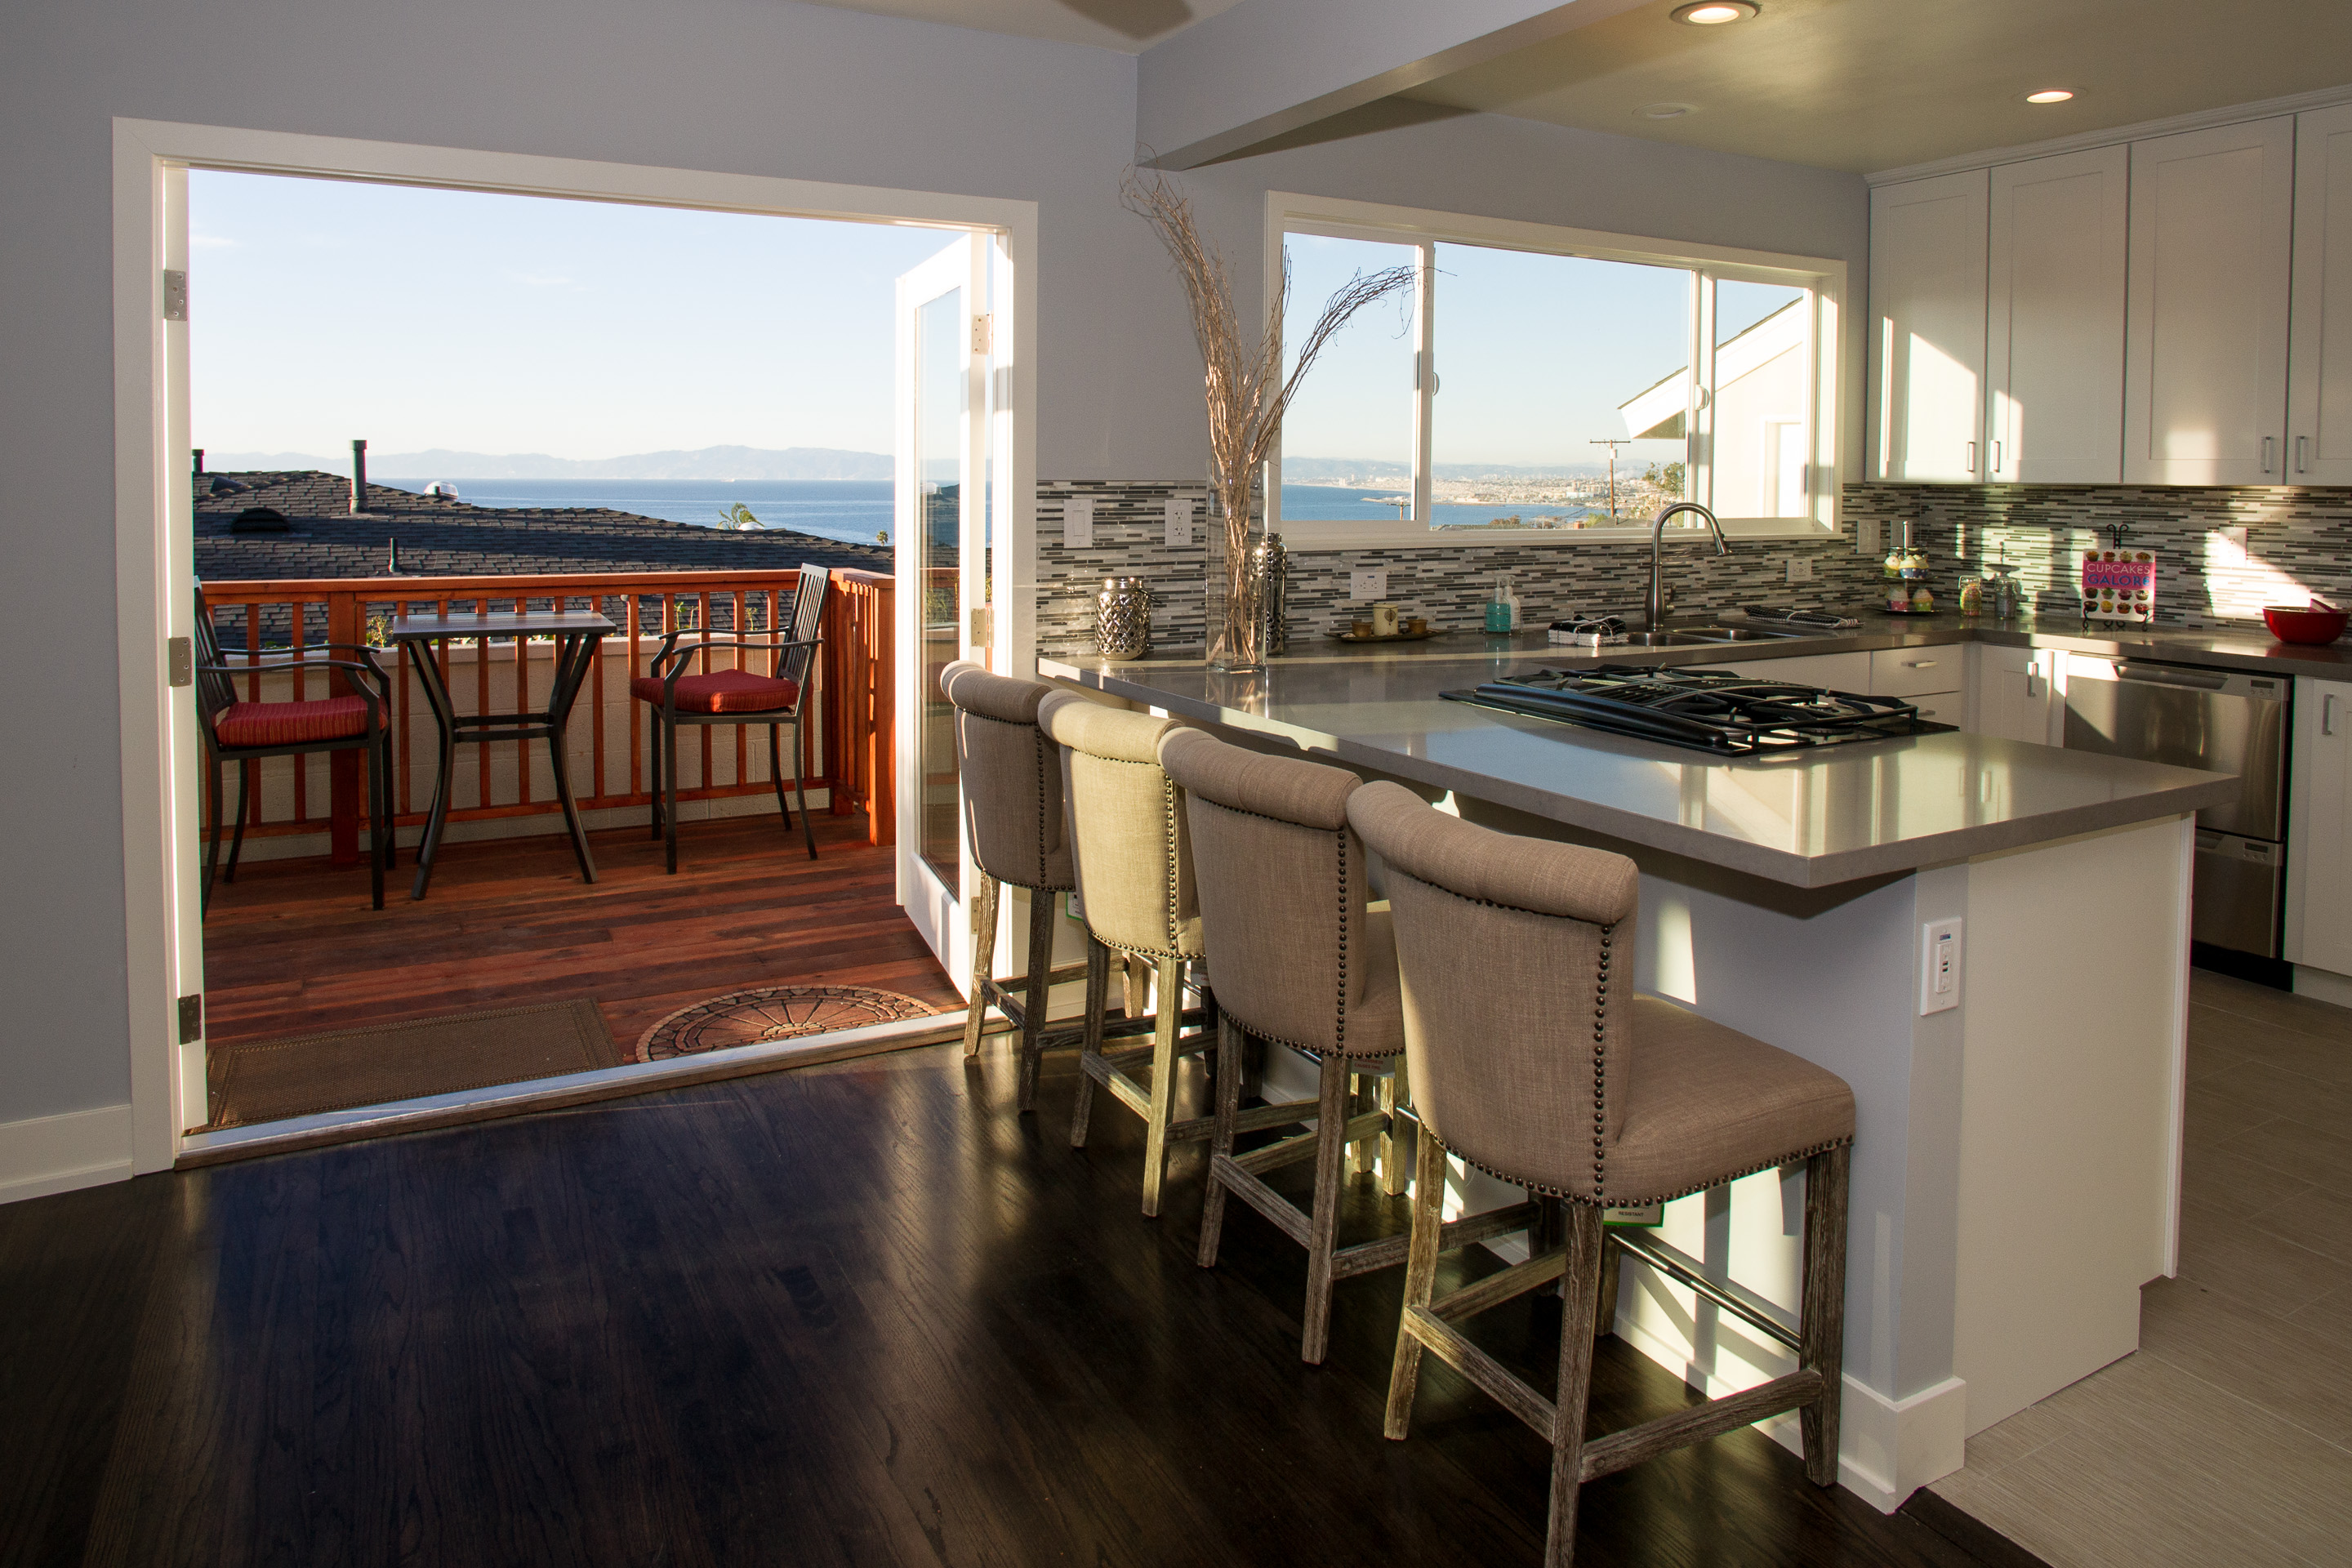 214-Via-Anita-Kitchen2-with-deck-and-view